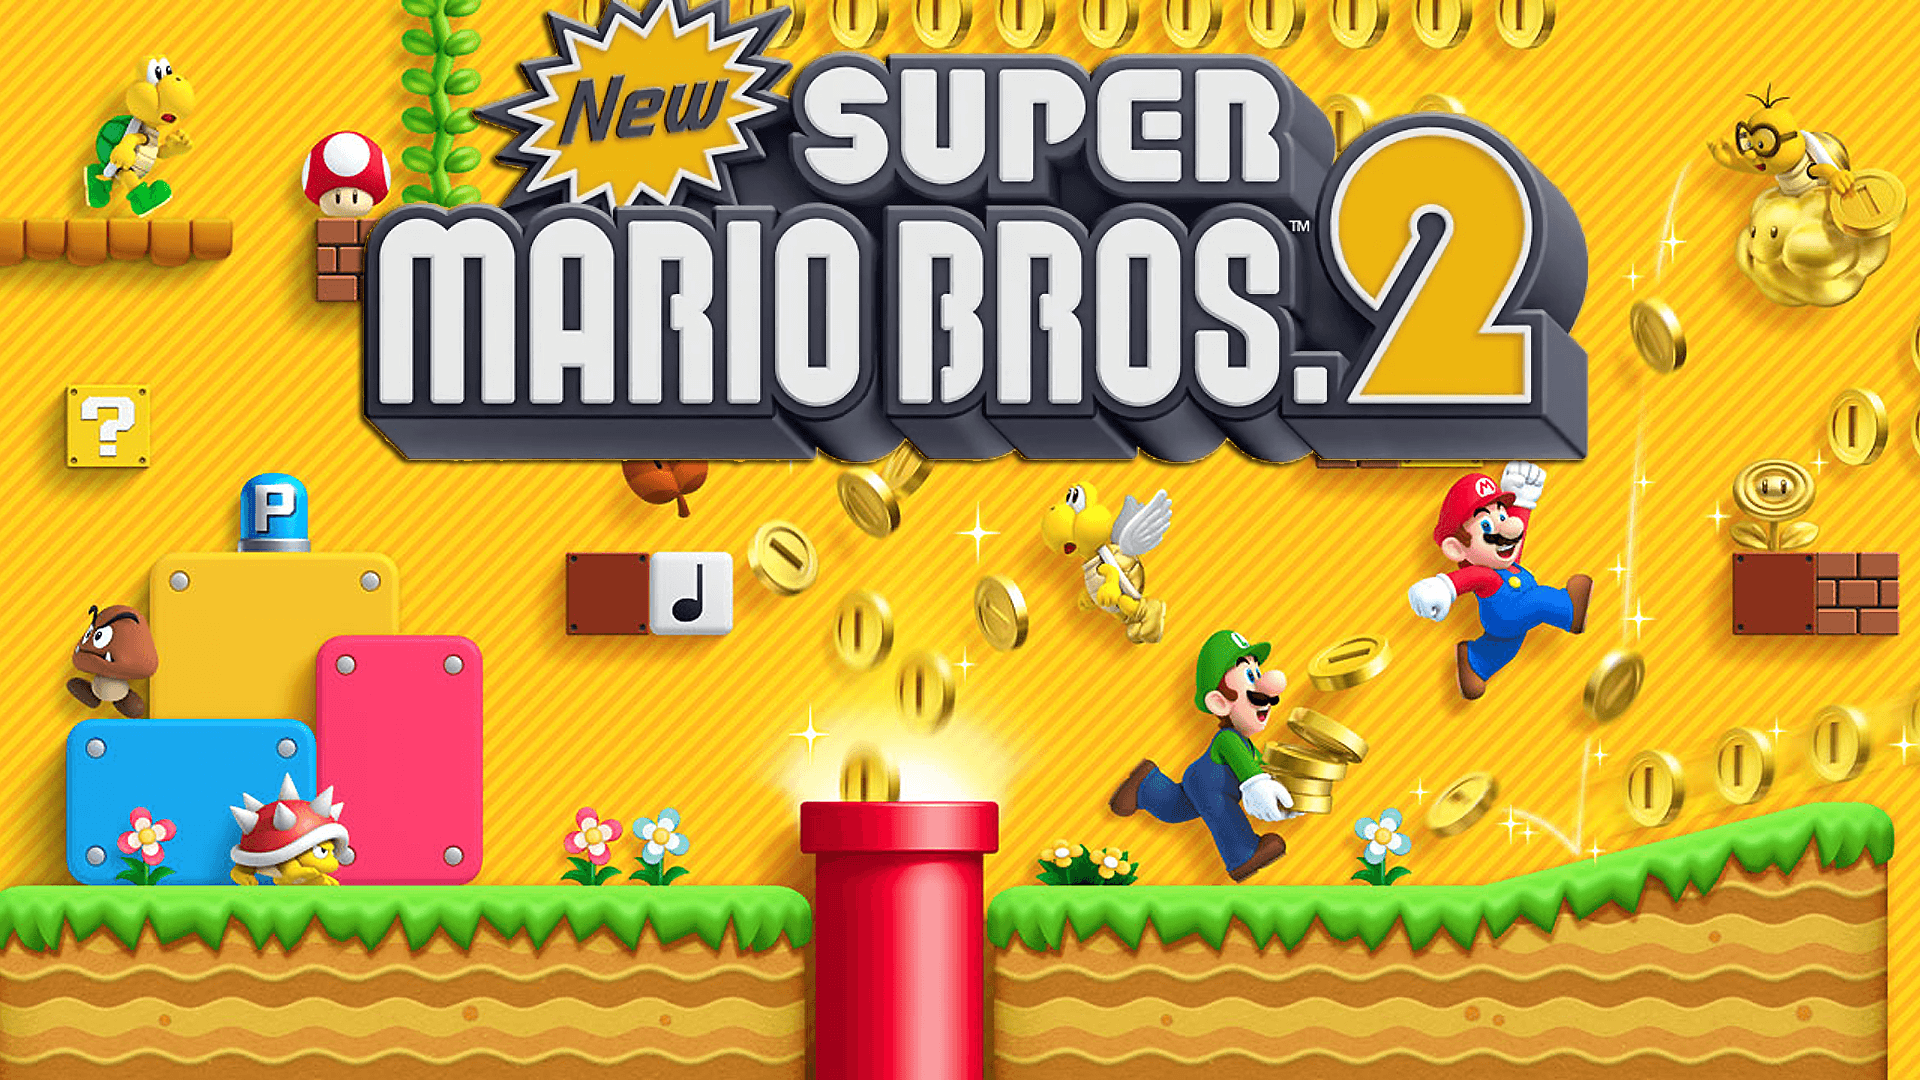 1920x1080 Wallpapers - New Super Mario Bros. 2 for Nintendo 3DS | Adorable ...